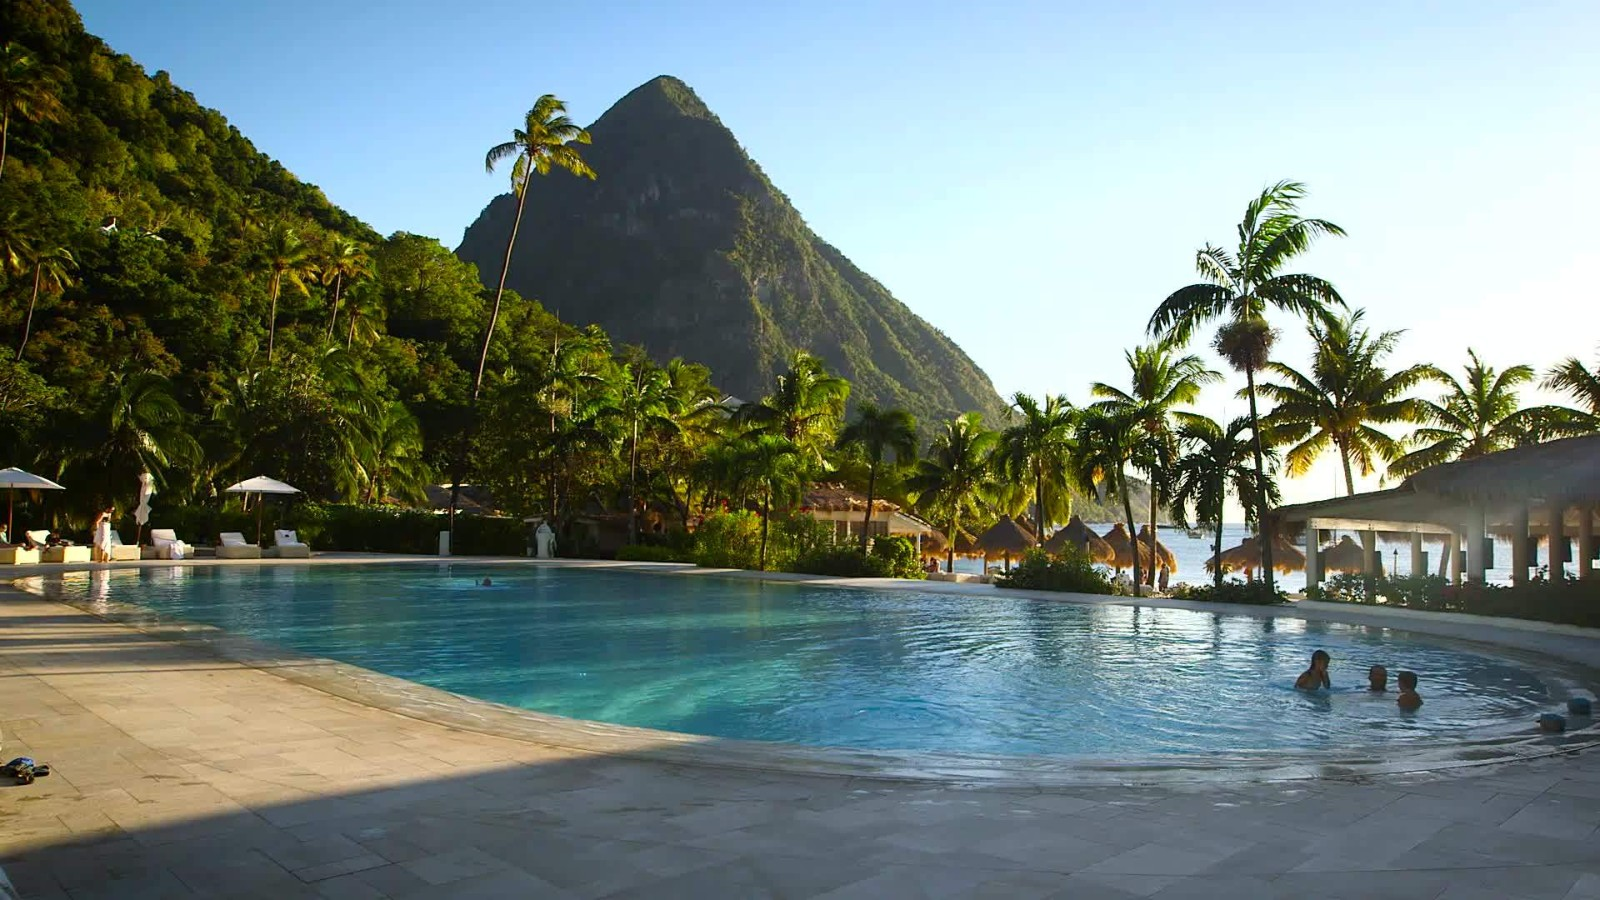 11 The Affordable All Inclusive Resort Caribbean Islands